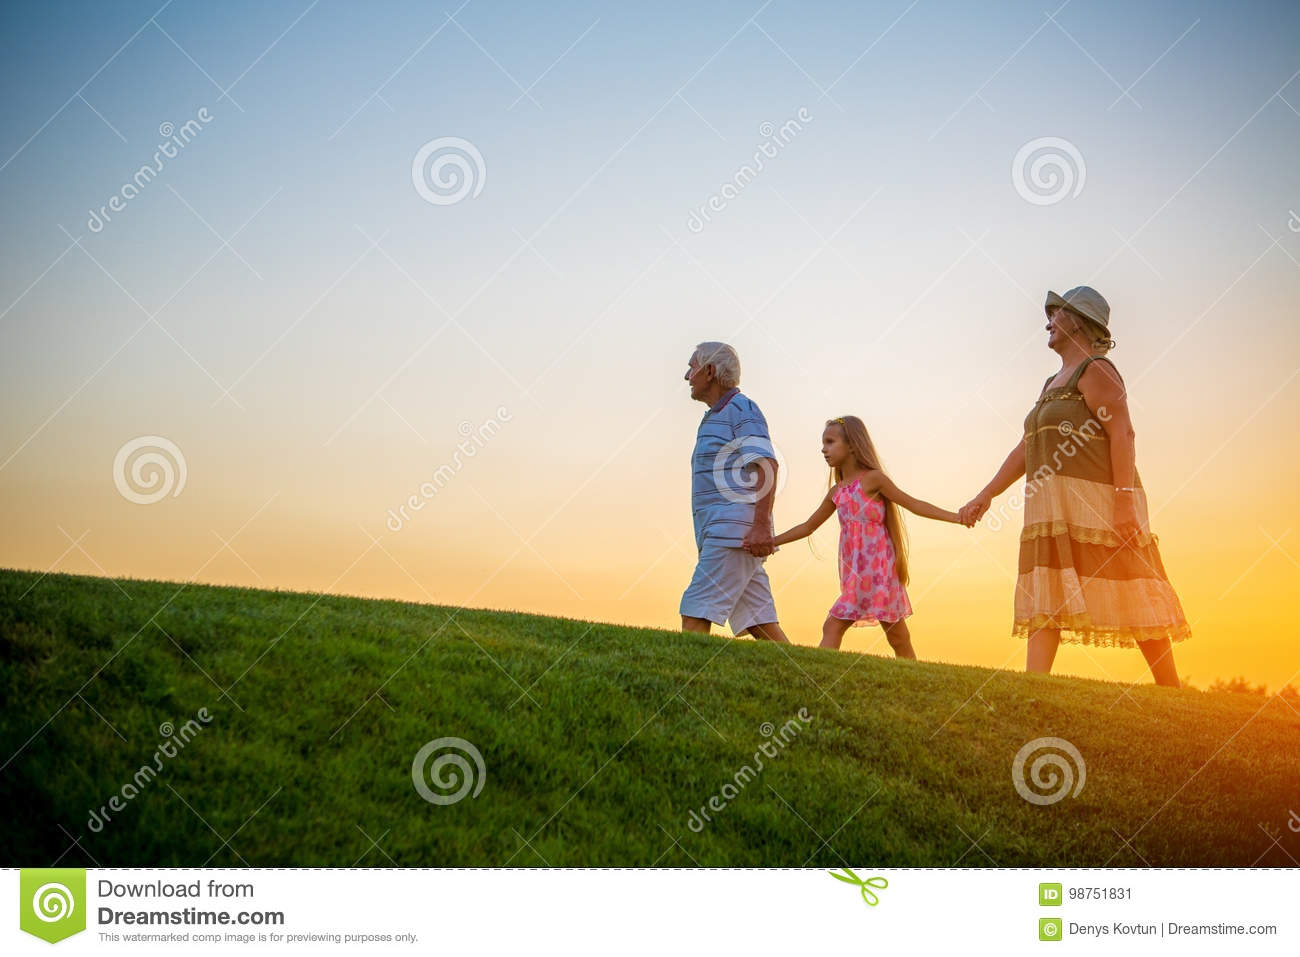 Girl with grandparents at sunset.